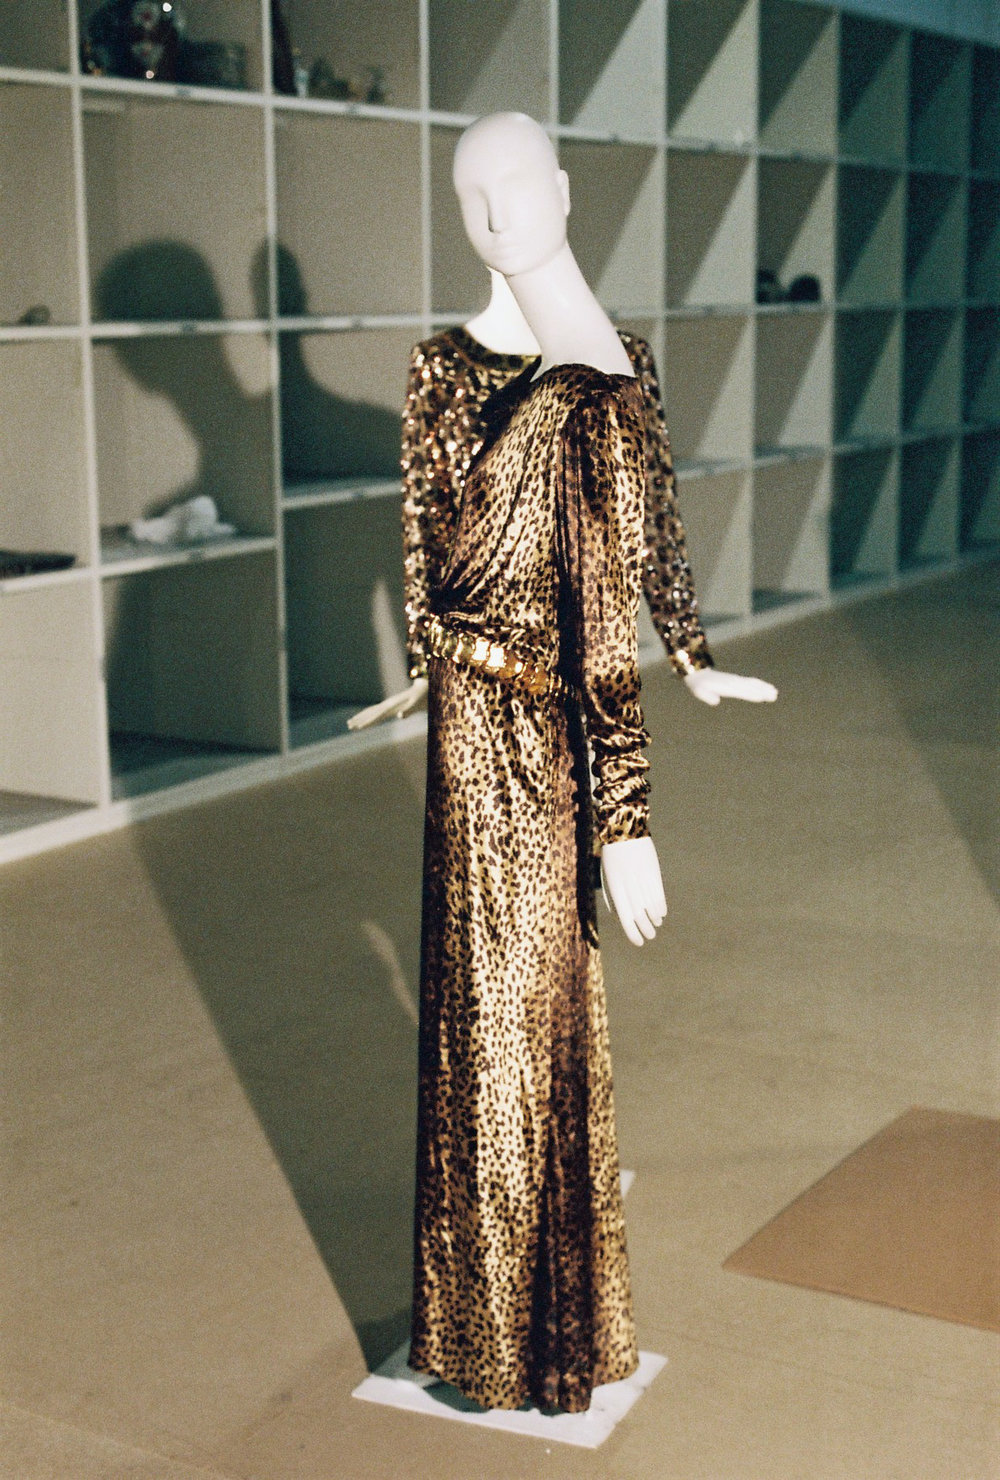 34_LEHR_YSL_CHRISTIES_3765-31.JPG